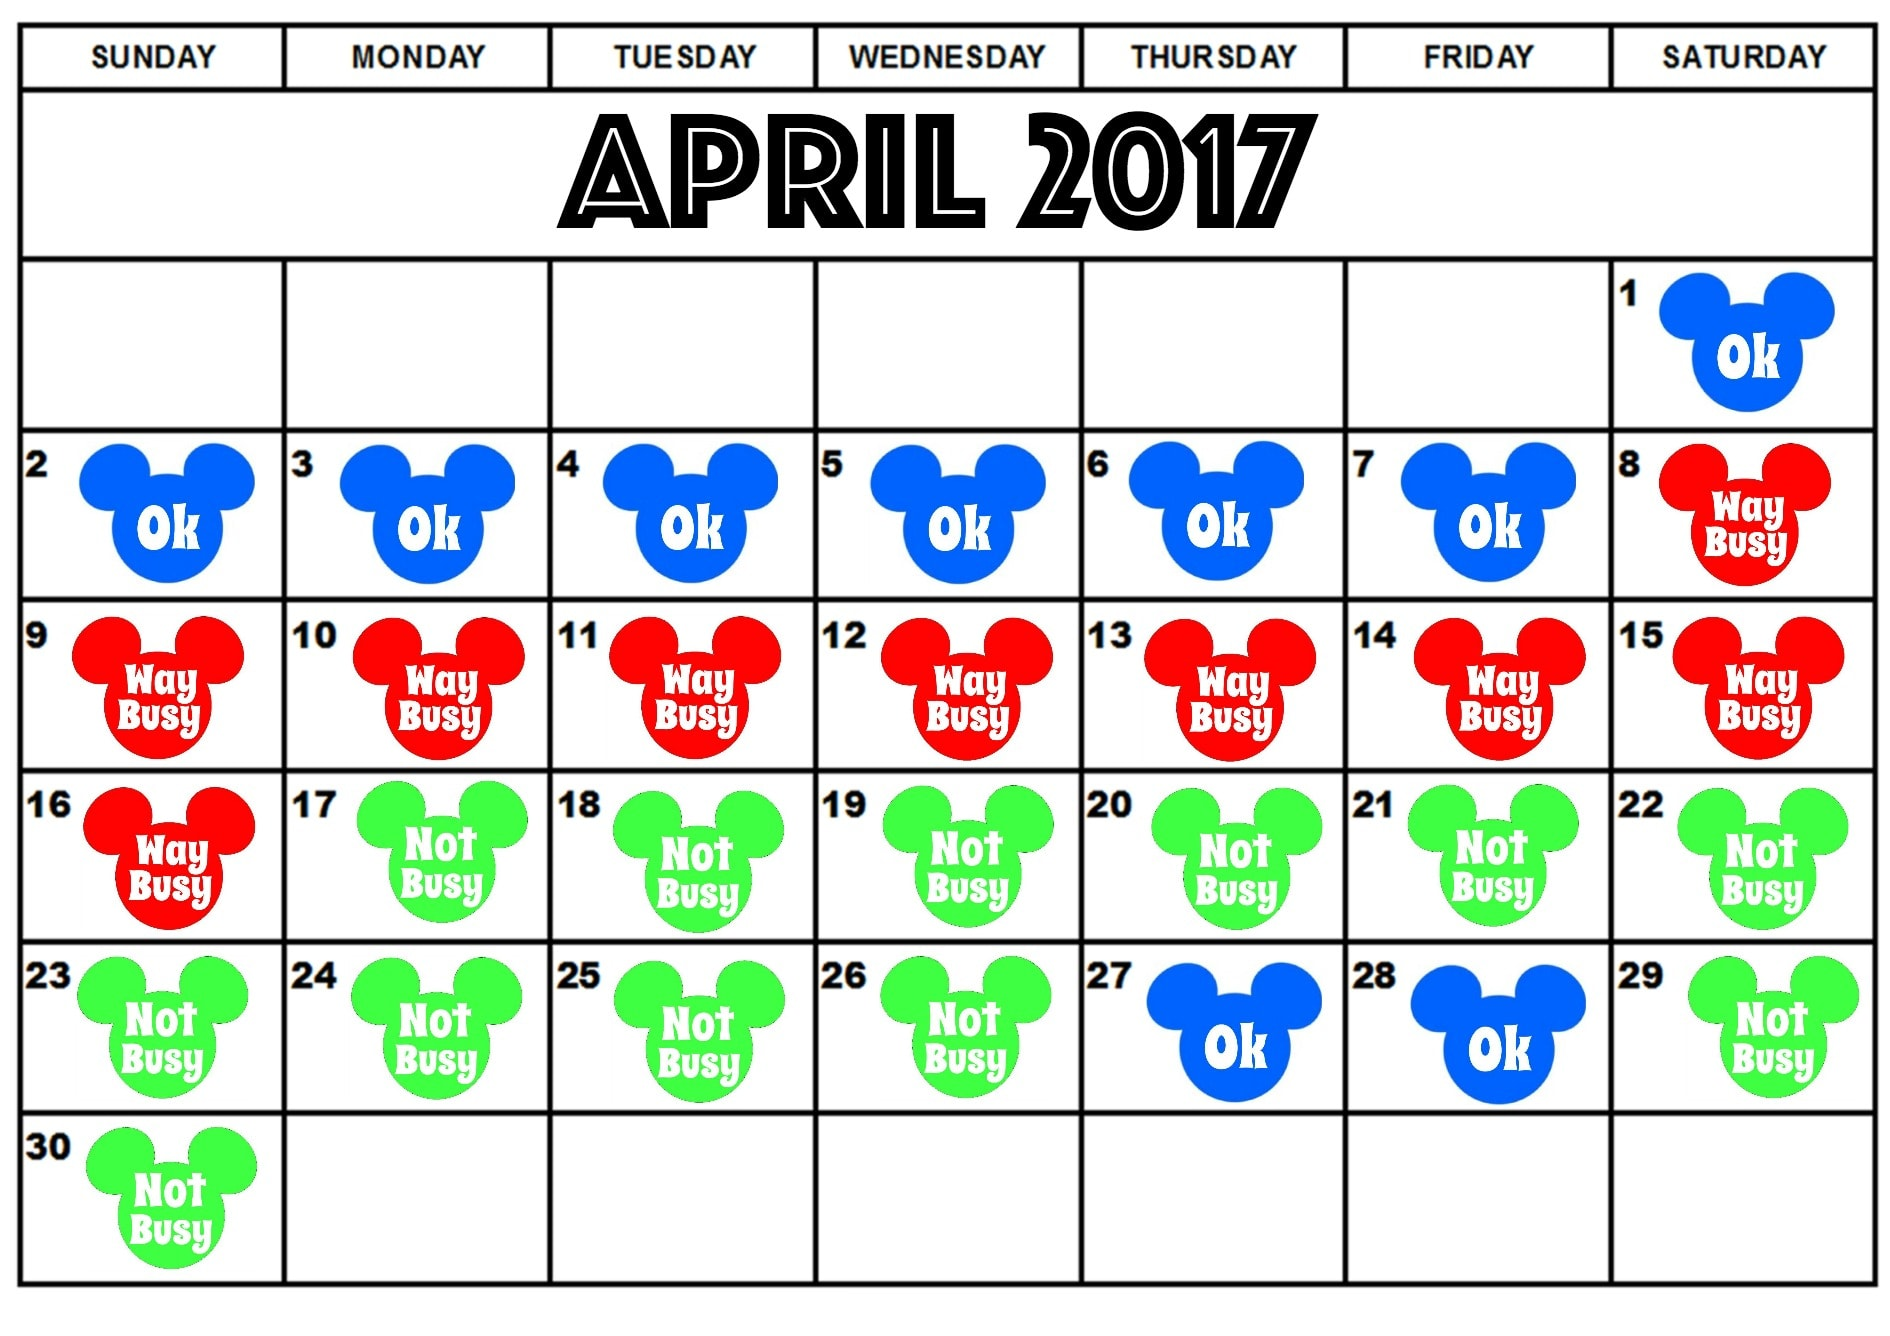 Disney World Crowd Calendar for April